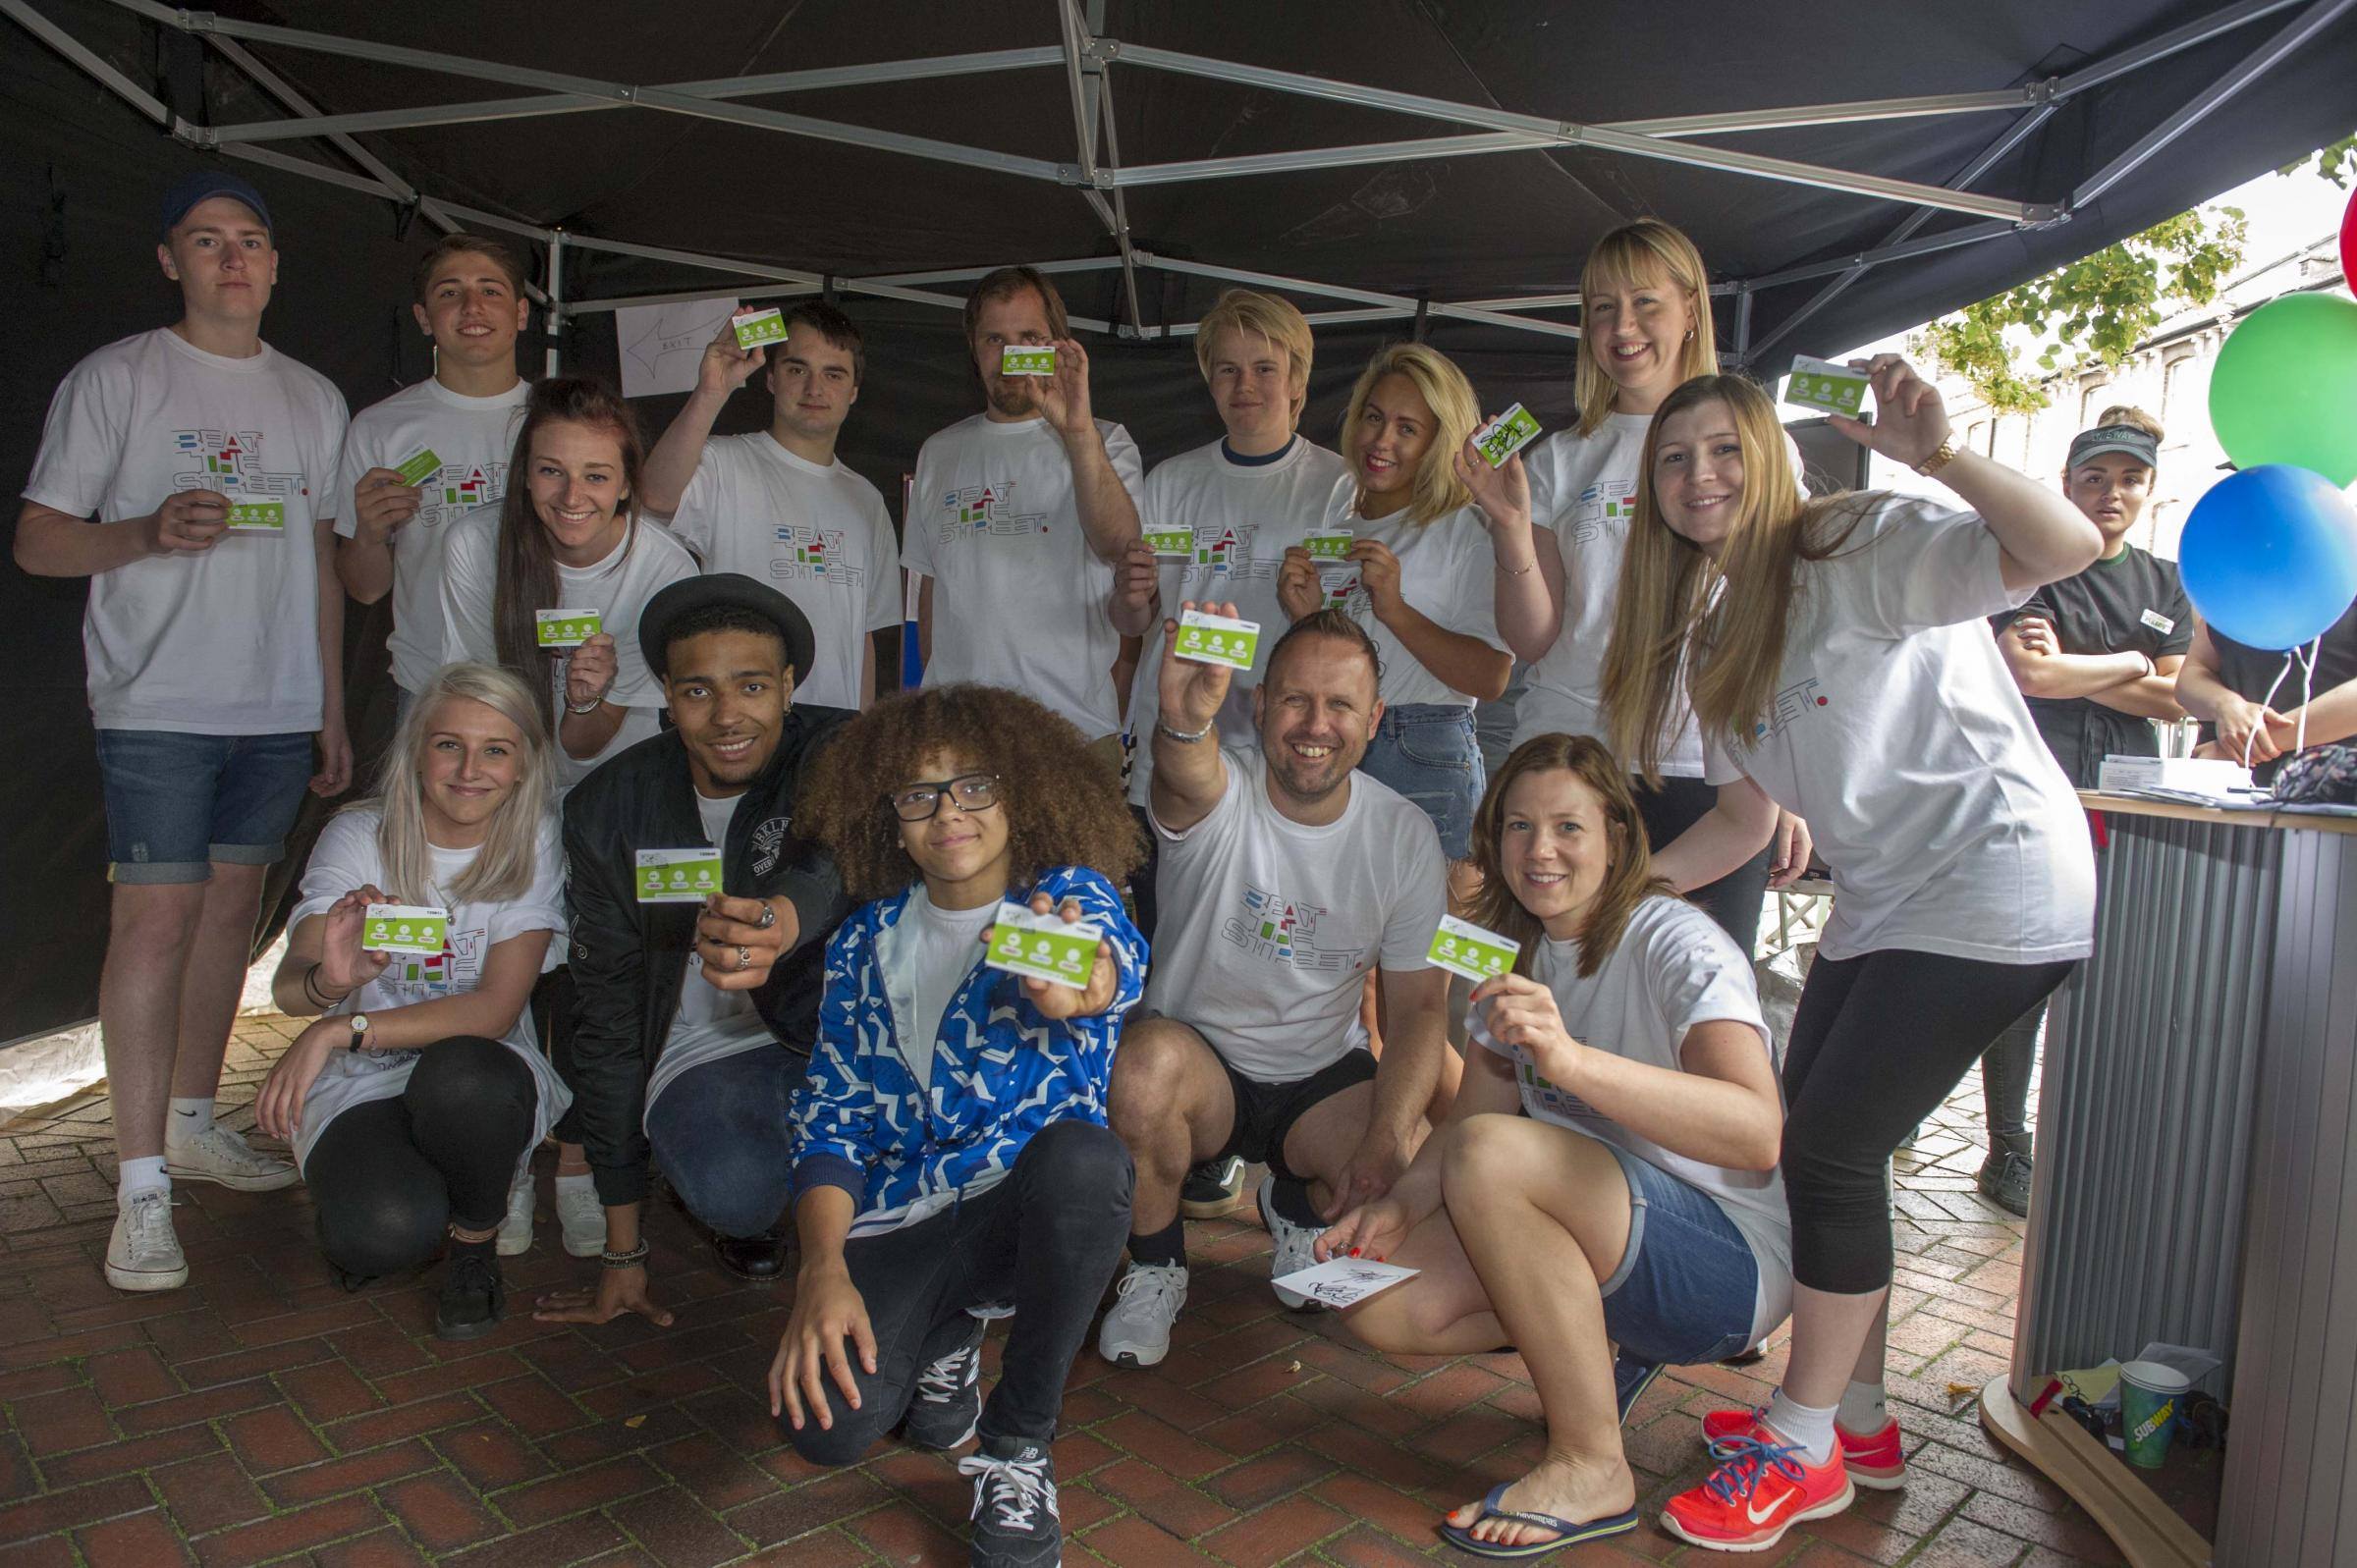 Perri Kiely and Jordan Banjo show their support for Beat the Street